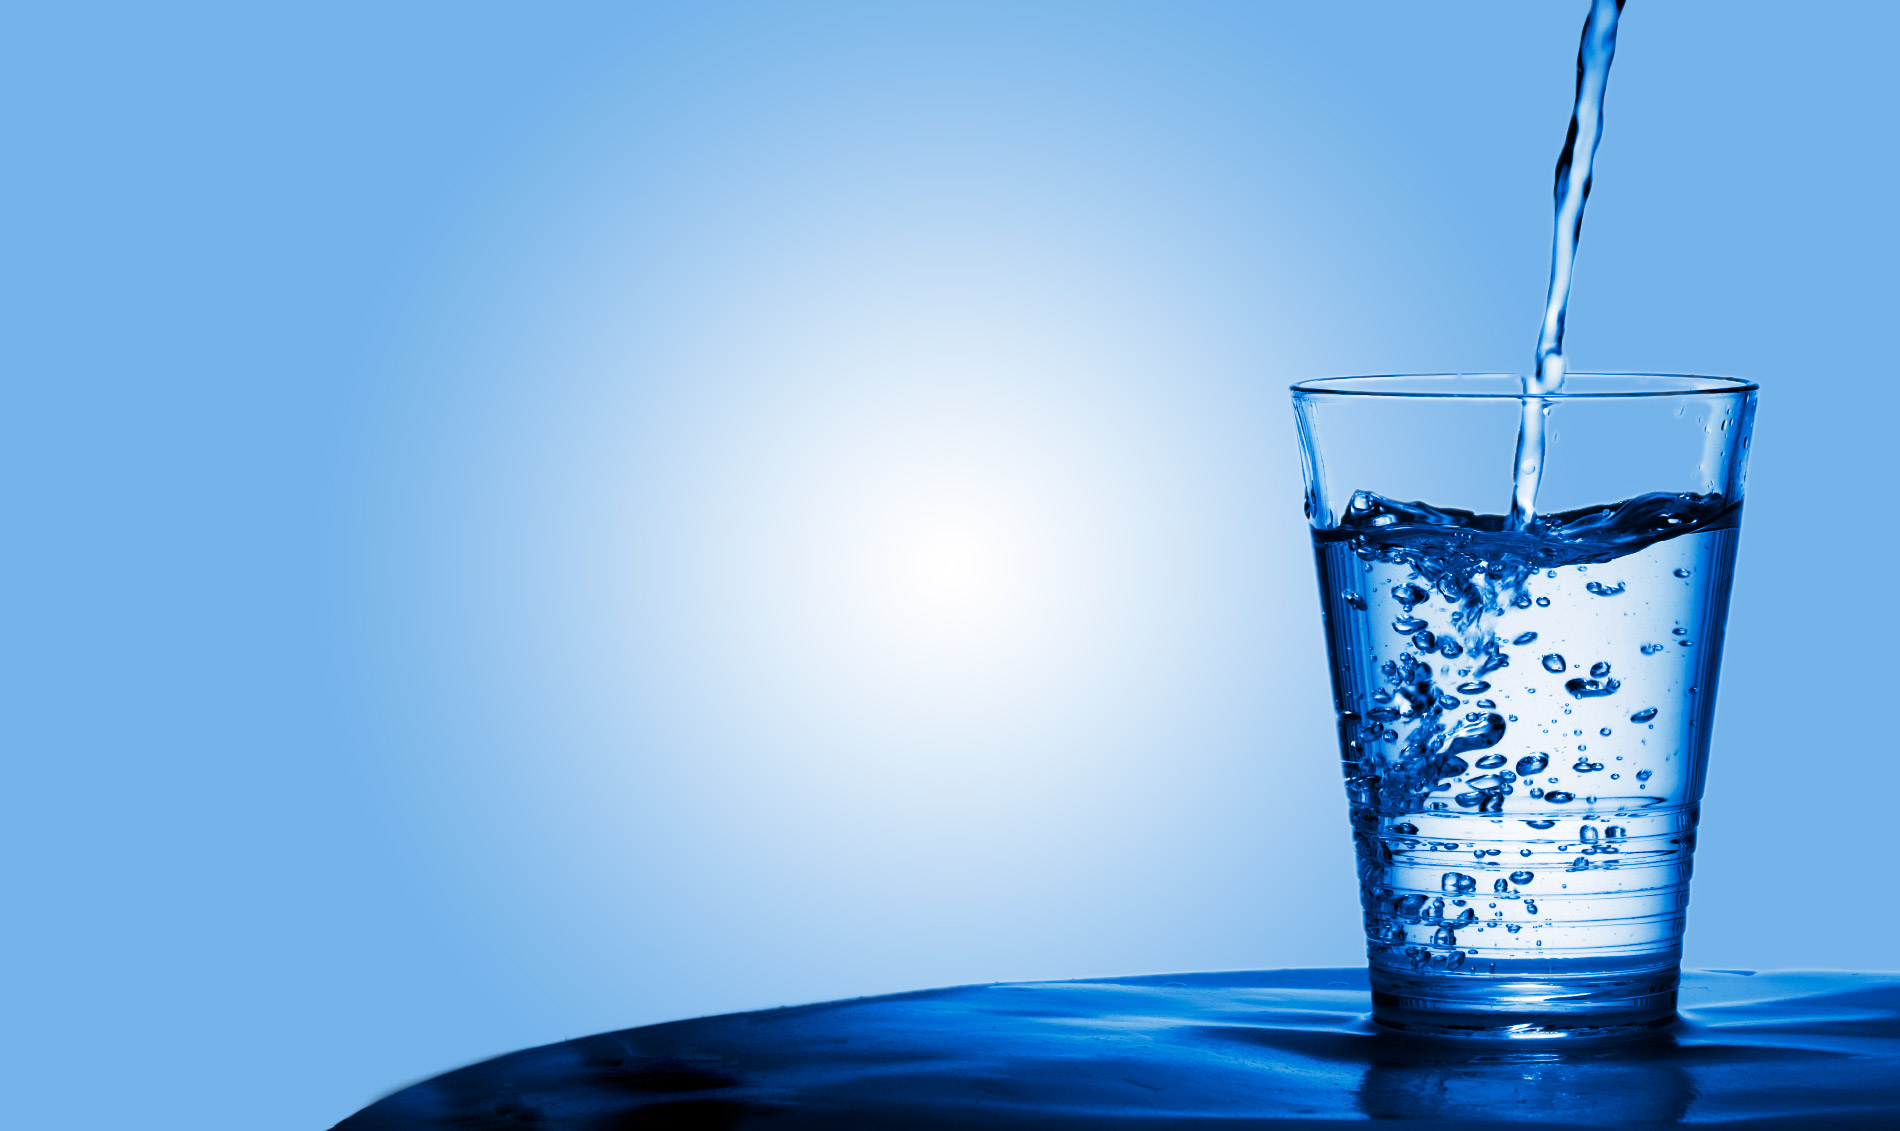 What Is The Importance Of Pure Water And How Can We Make Water Pure? - 1Top  Blog